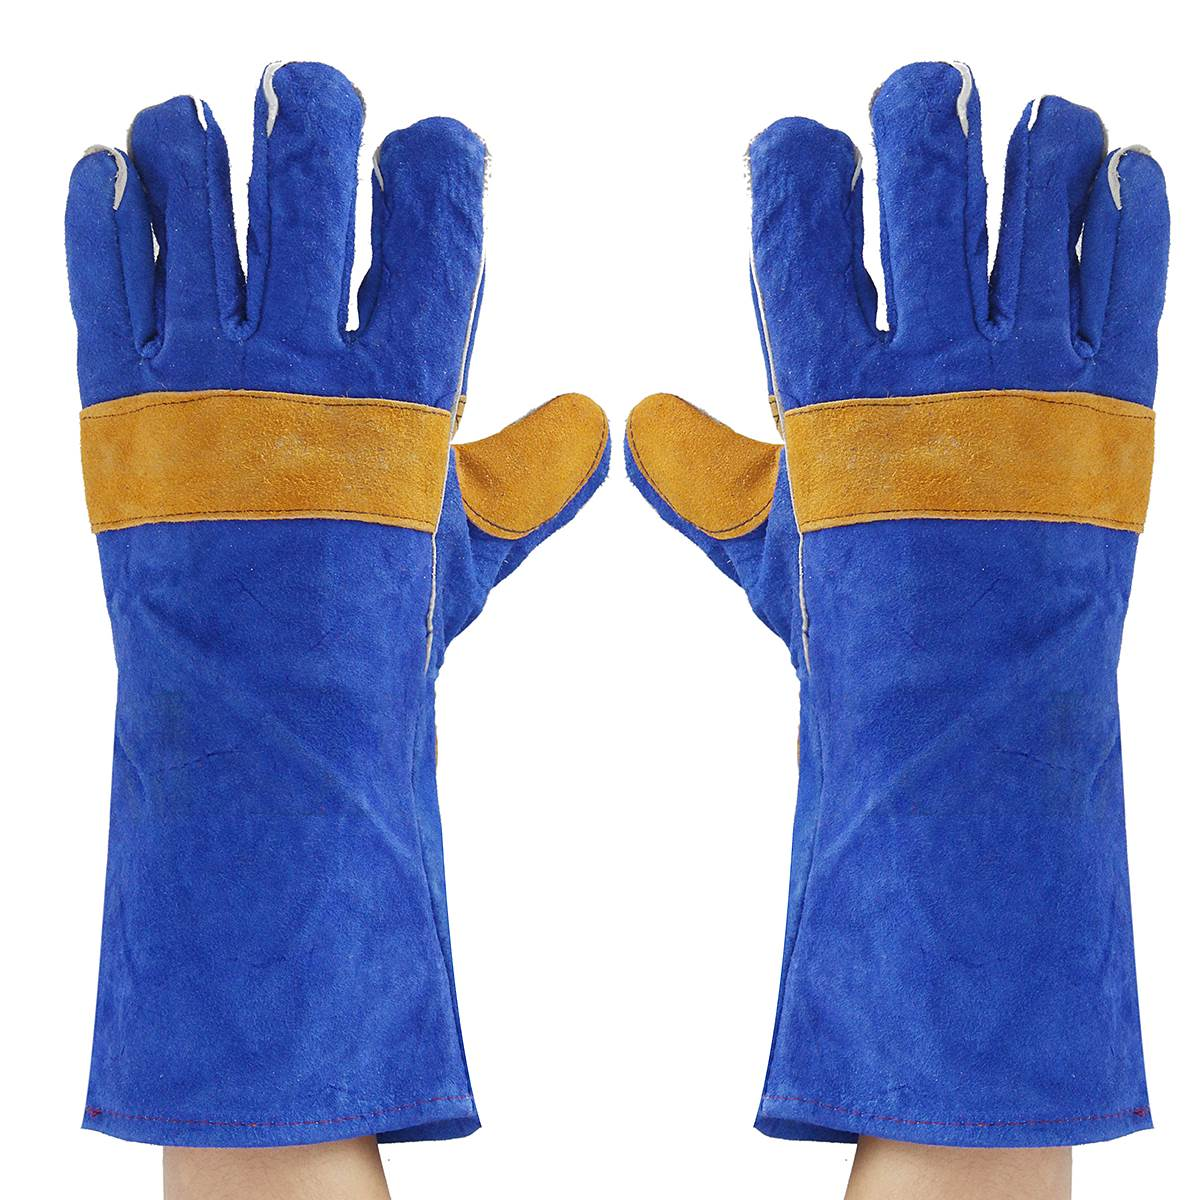 35/40cm Heavy Duty Welding Gloves Leather Cowhide Protect Welder Hands 2 Sizes  Workplace  Safety Gloves welder machine plasma cutter welder mask for welder machine